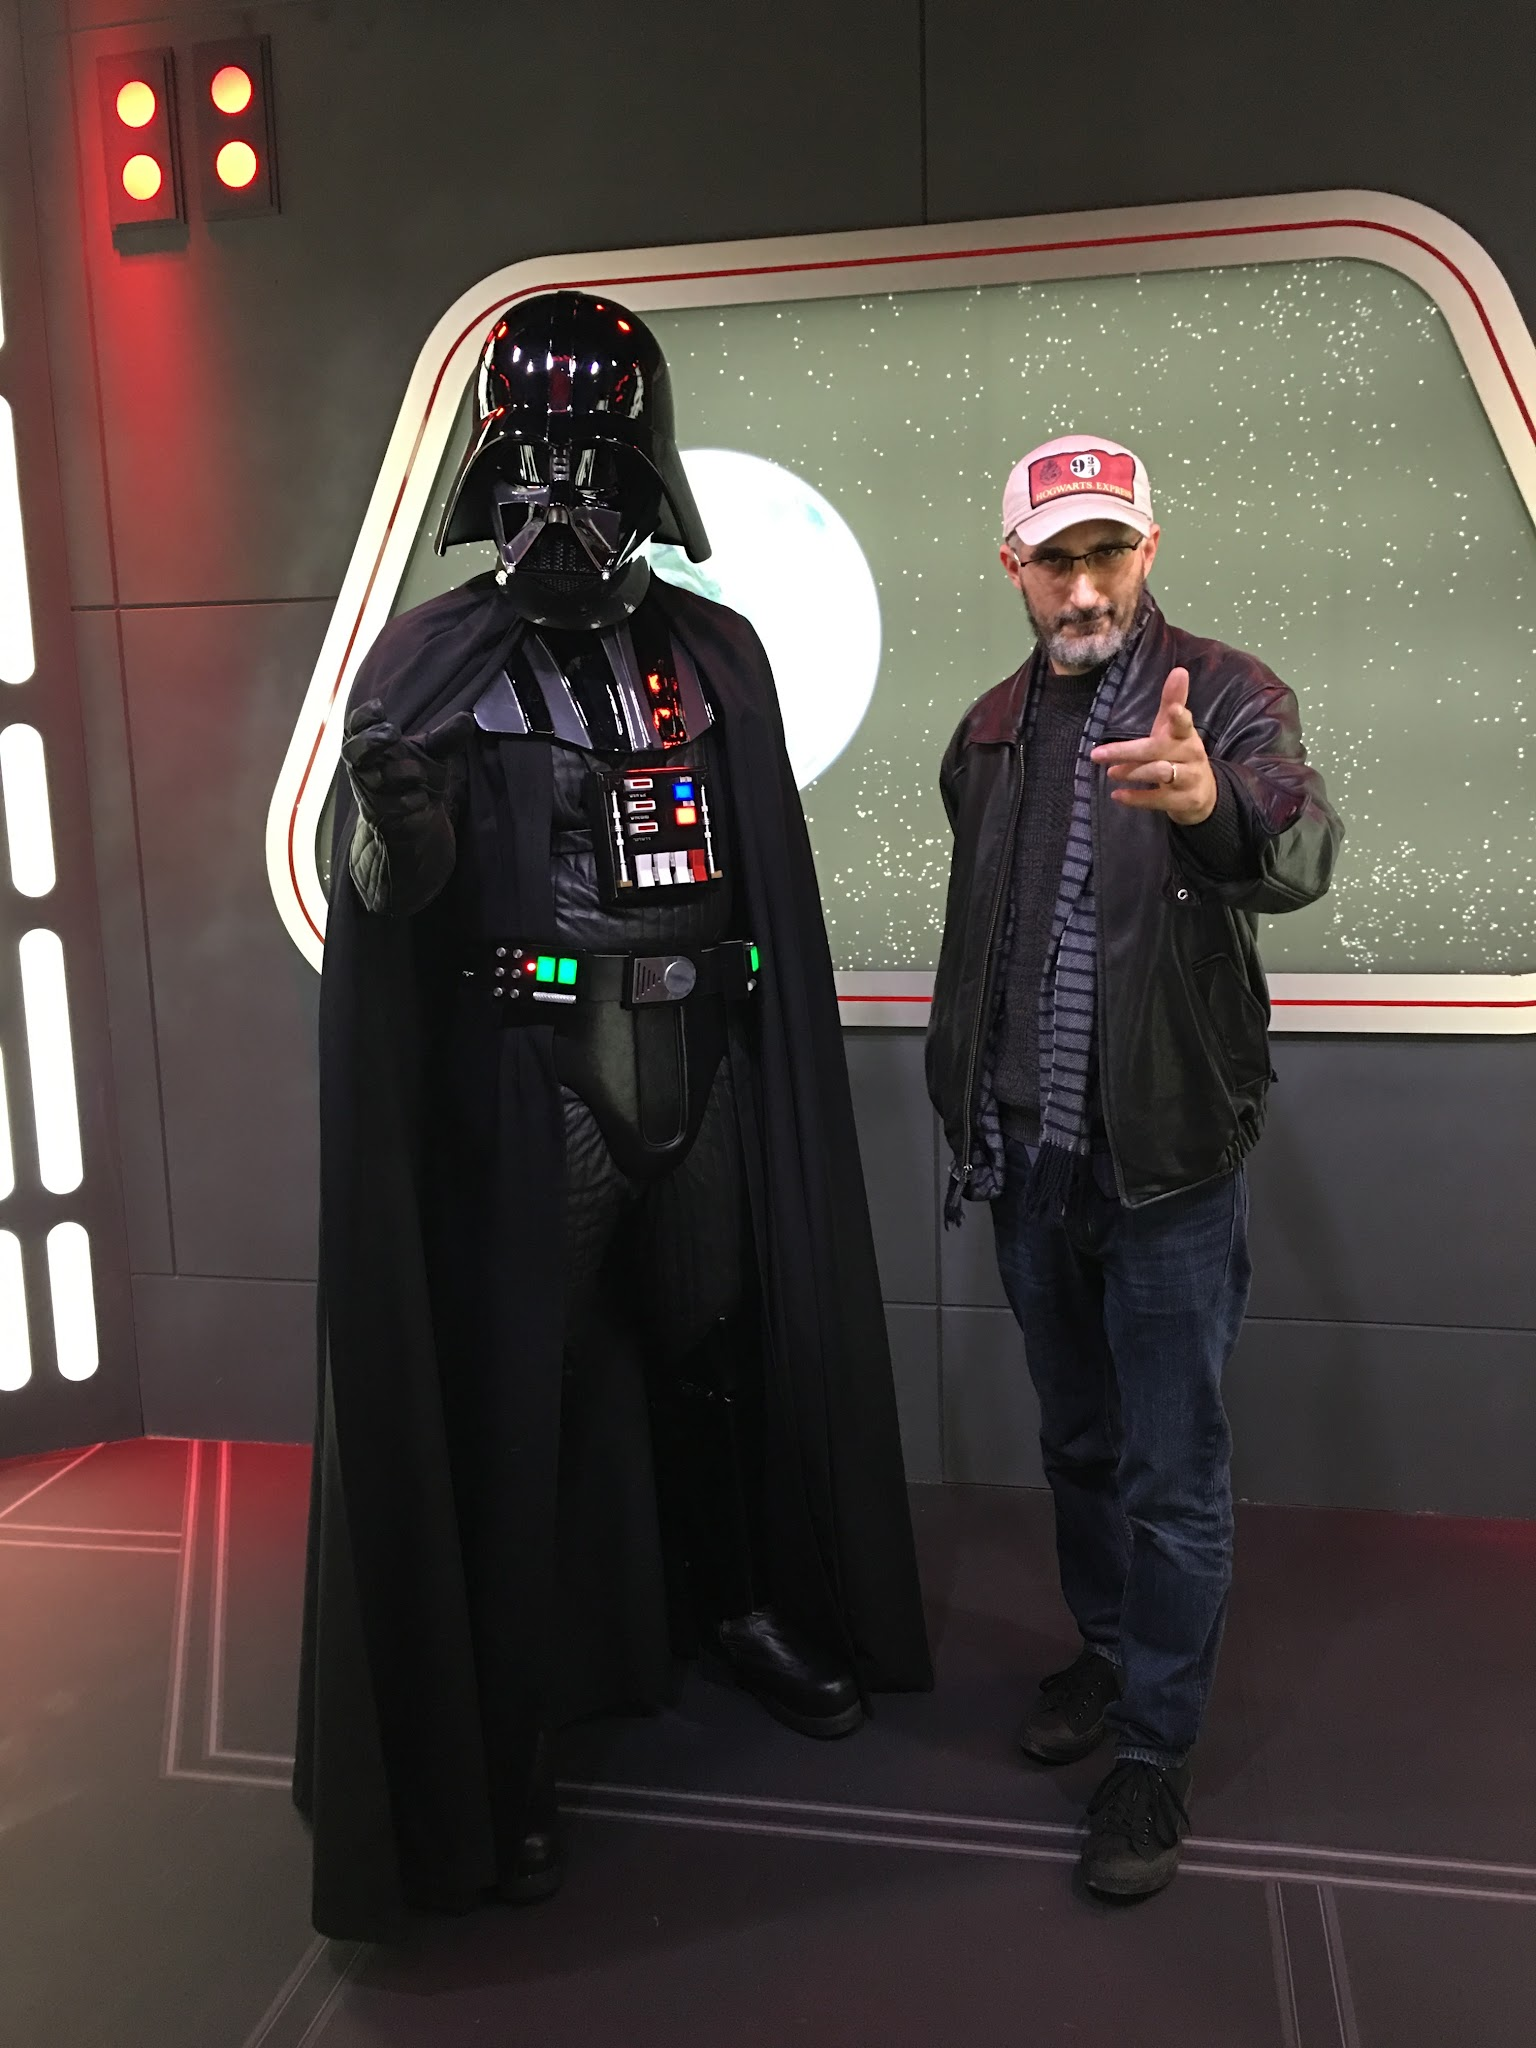 Disneyland season of the force videos photo gallery touringplans the two public meet and greets are as popular in disneyland as in dhs and neither offer fastpass count on at least 30 minutes each to meet chewbacca or m4hsunfo